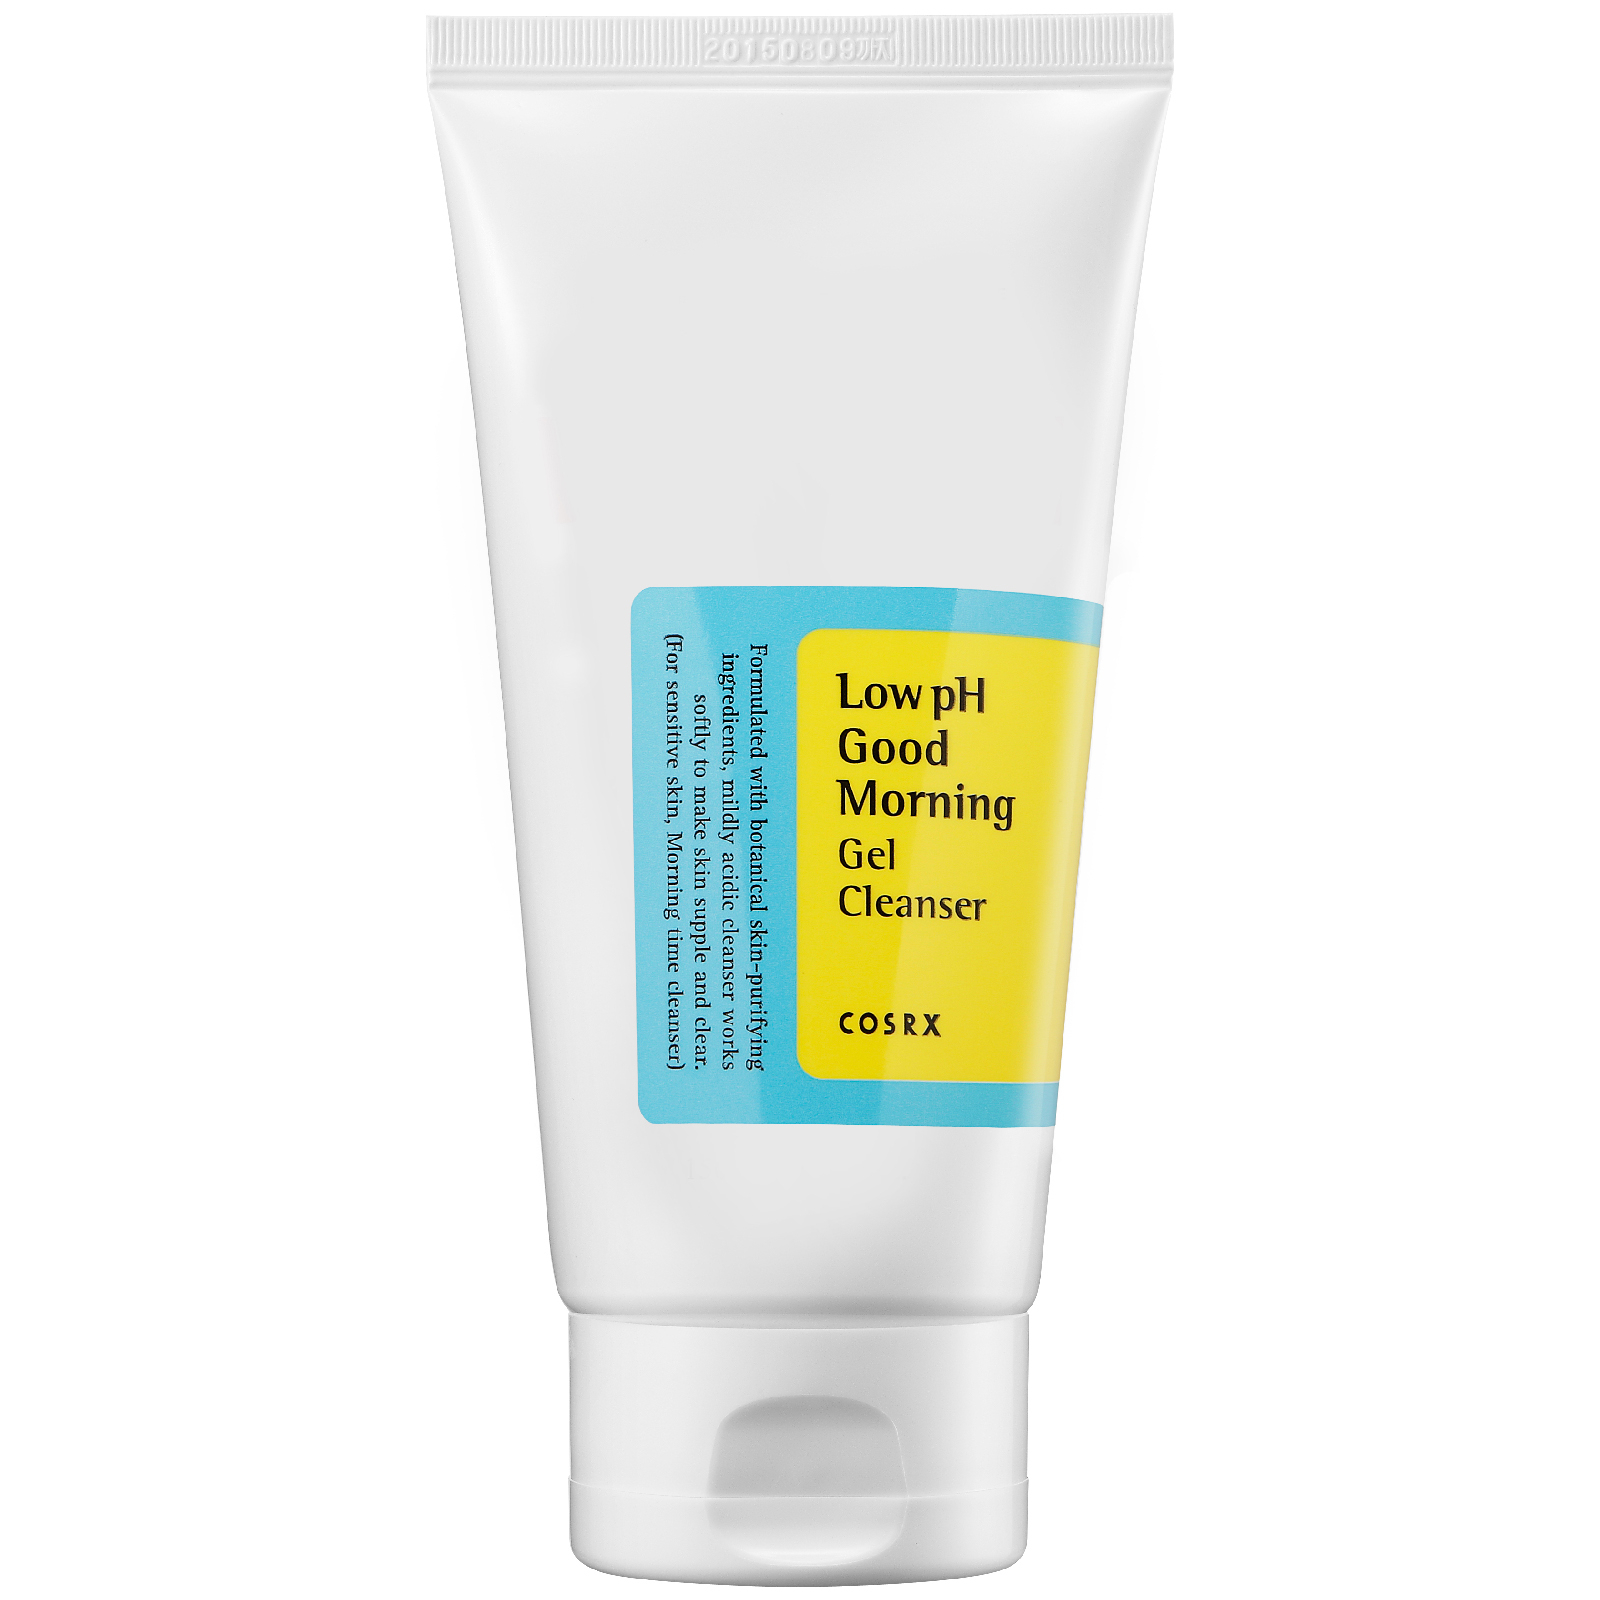 Image result for cosrx low ph cleanser